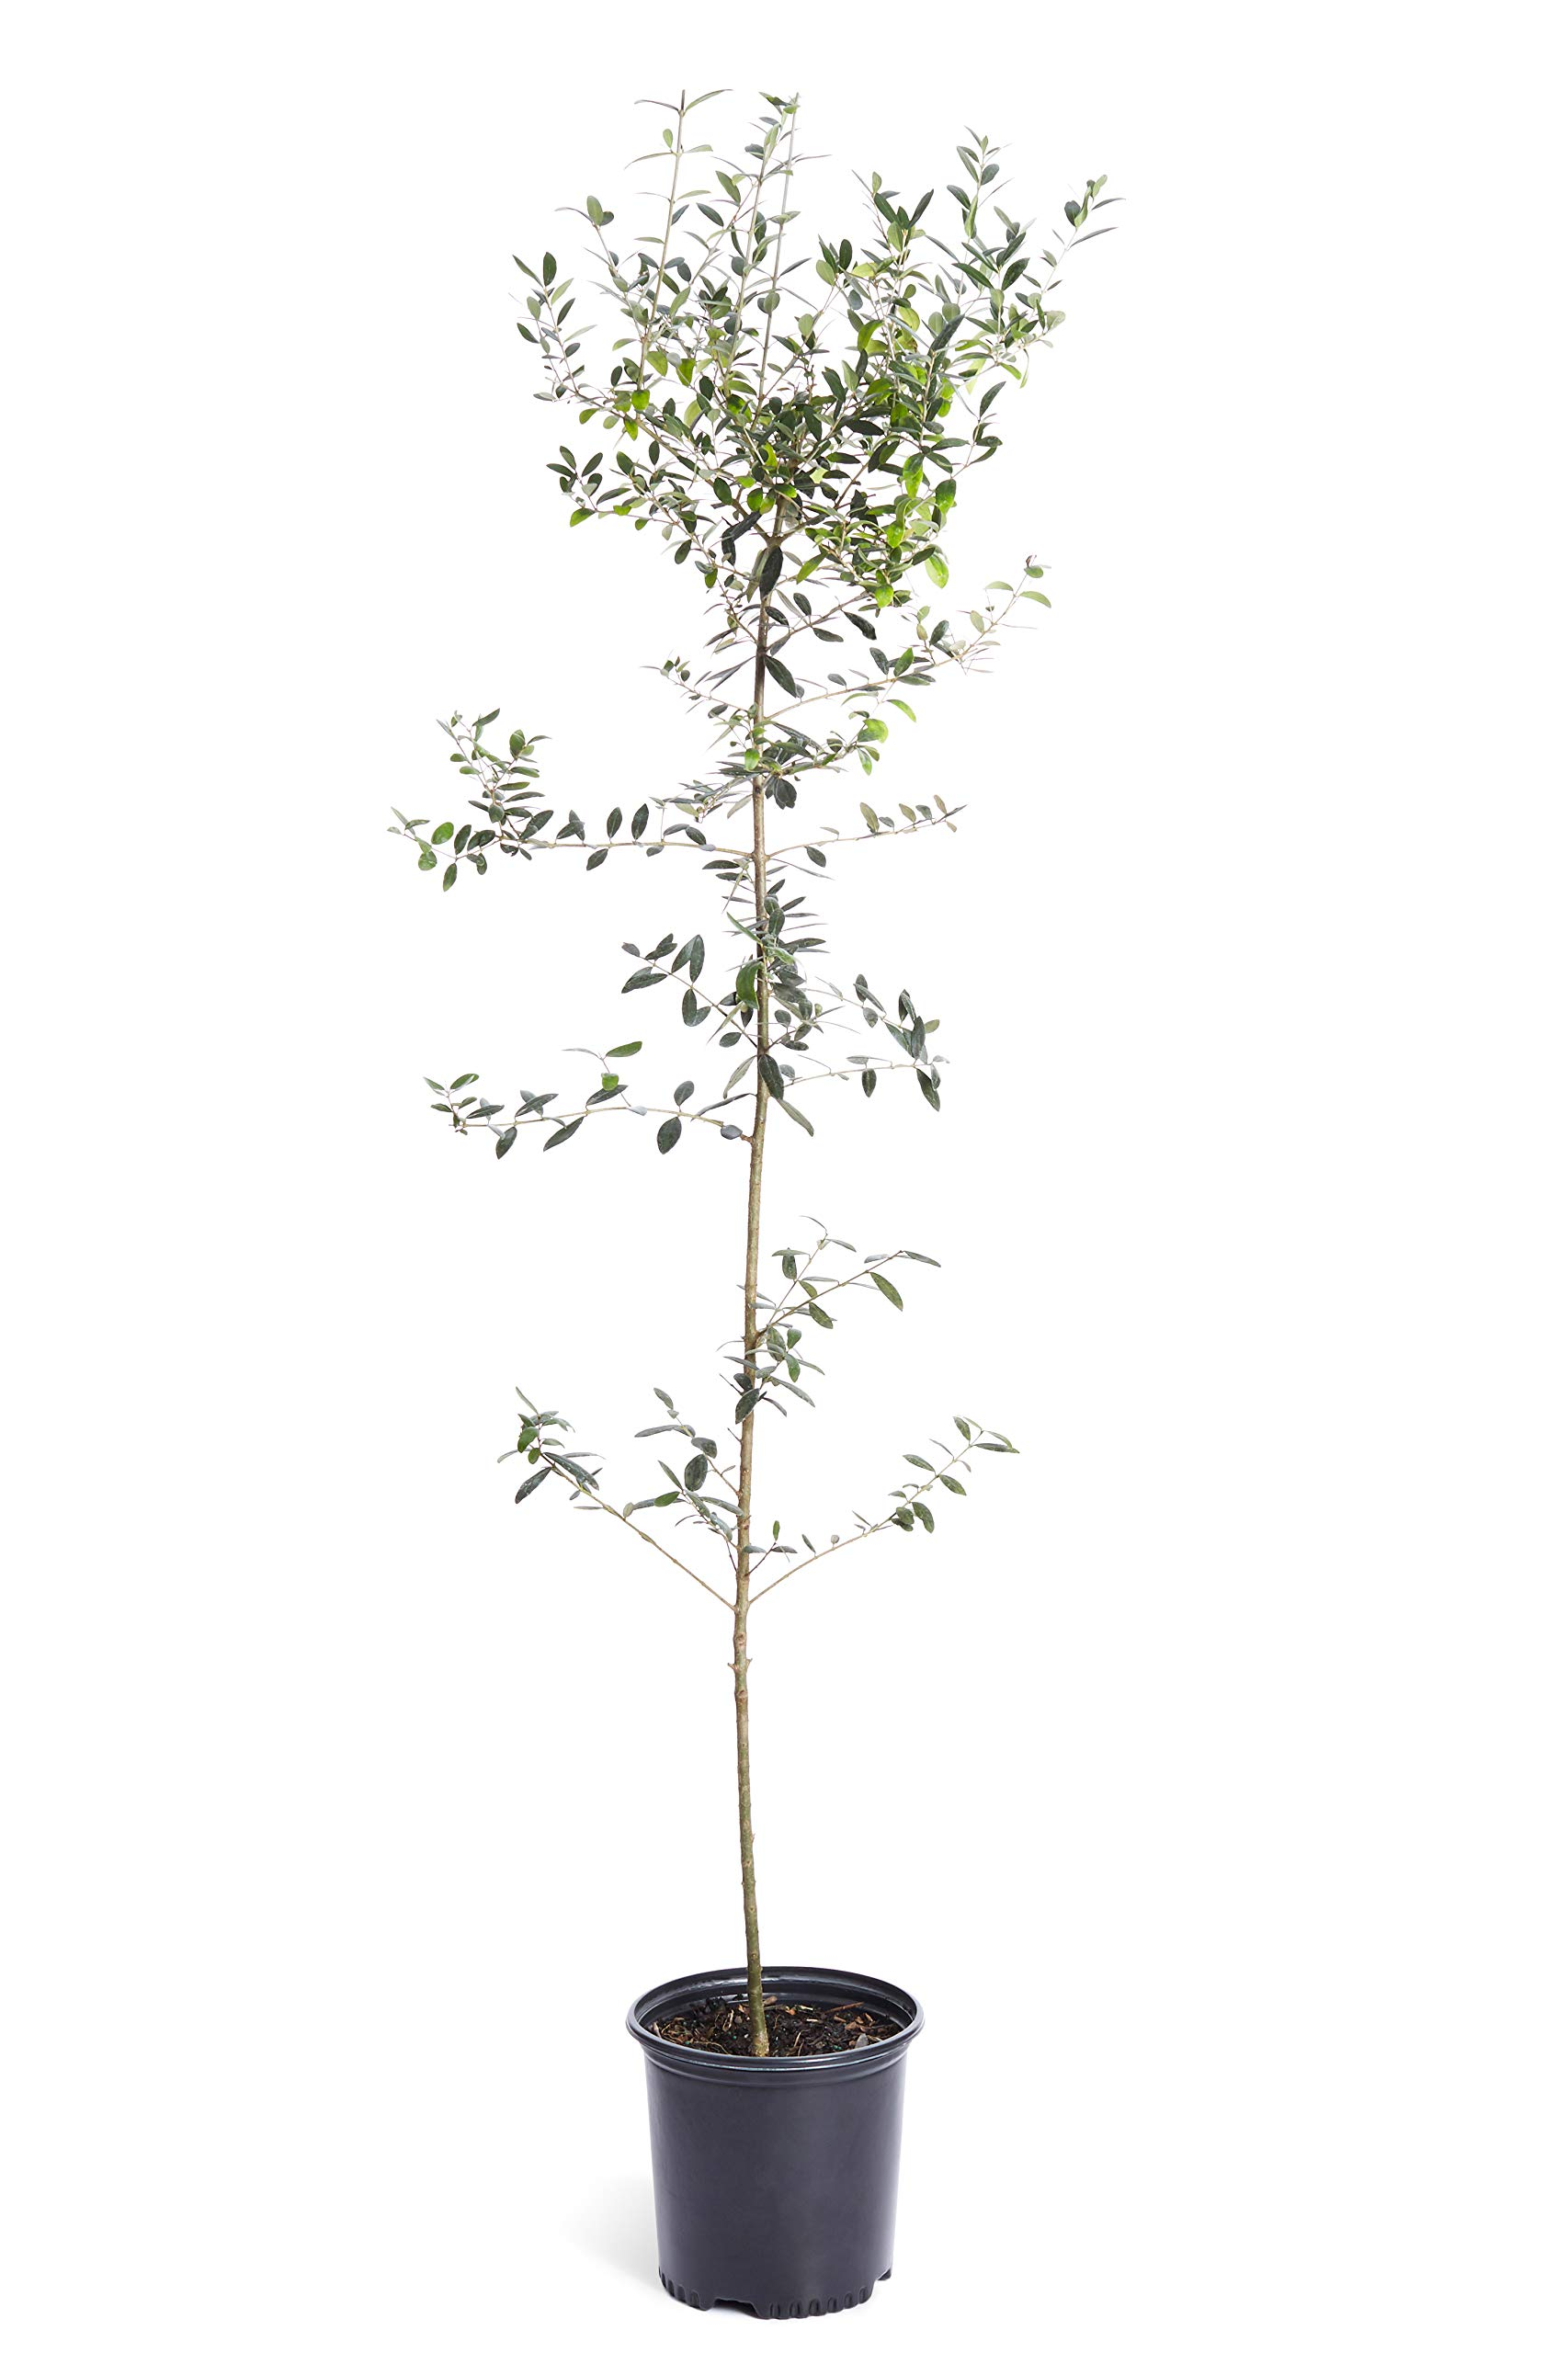 Arbequina Olive Tree 3-4 feet Tall - Get Olives 1st Year with Large Olive Trees - Indoor/Patio Live Olive Trees | No Shipping to AZ by Brighter Blooms (Image #1)